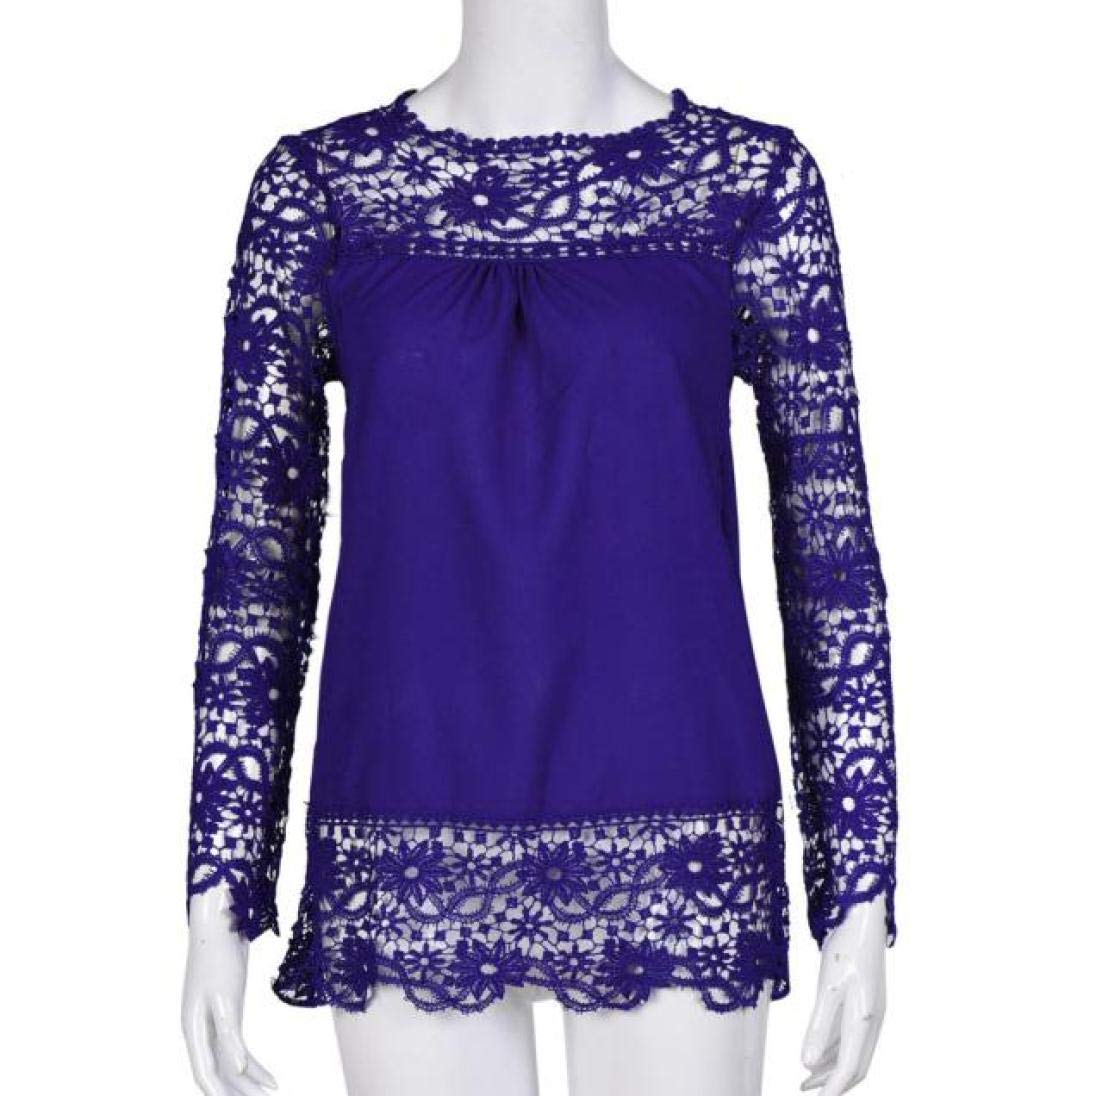 Women Plus Size Hollow Out Lace Splice Long Sleeve Shirt Casual Blouse Loose Top(Blue,Medium) by iQKA (Image #2)